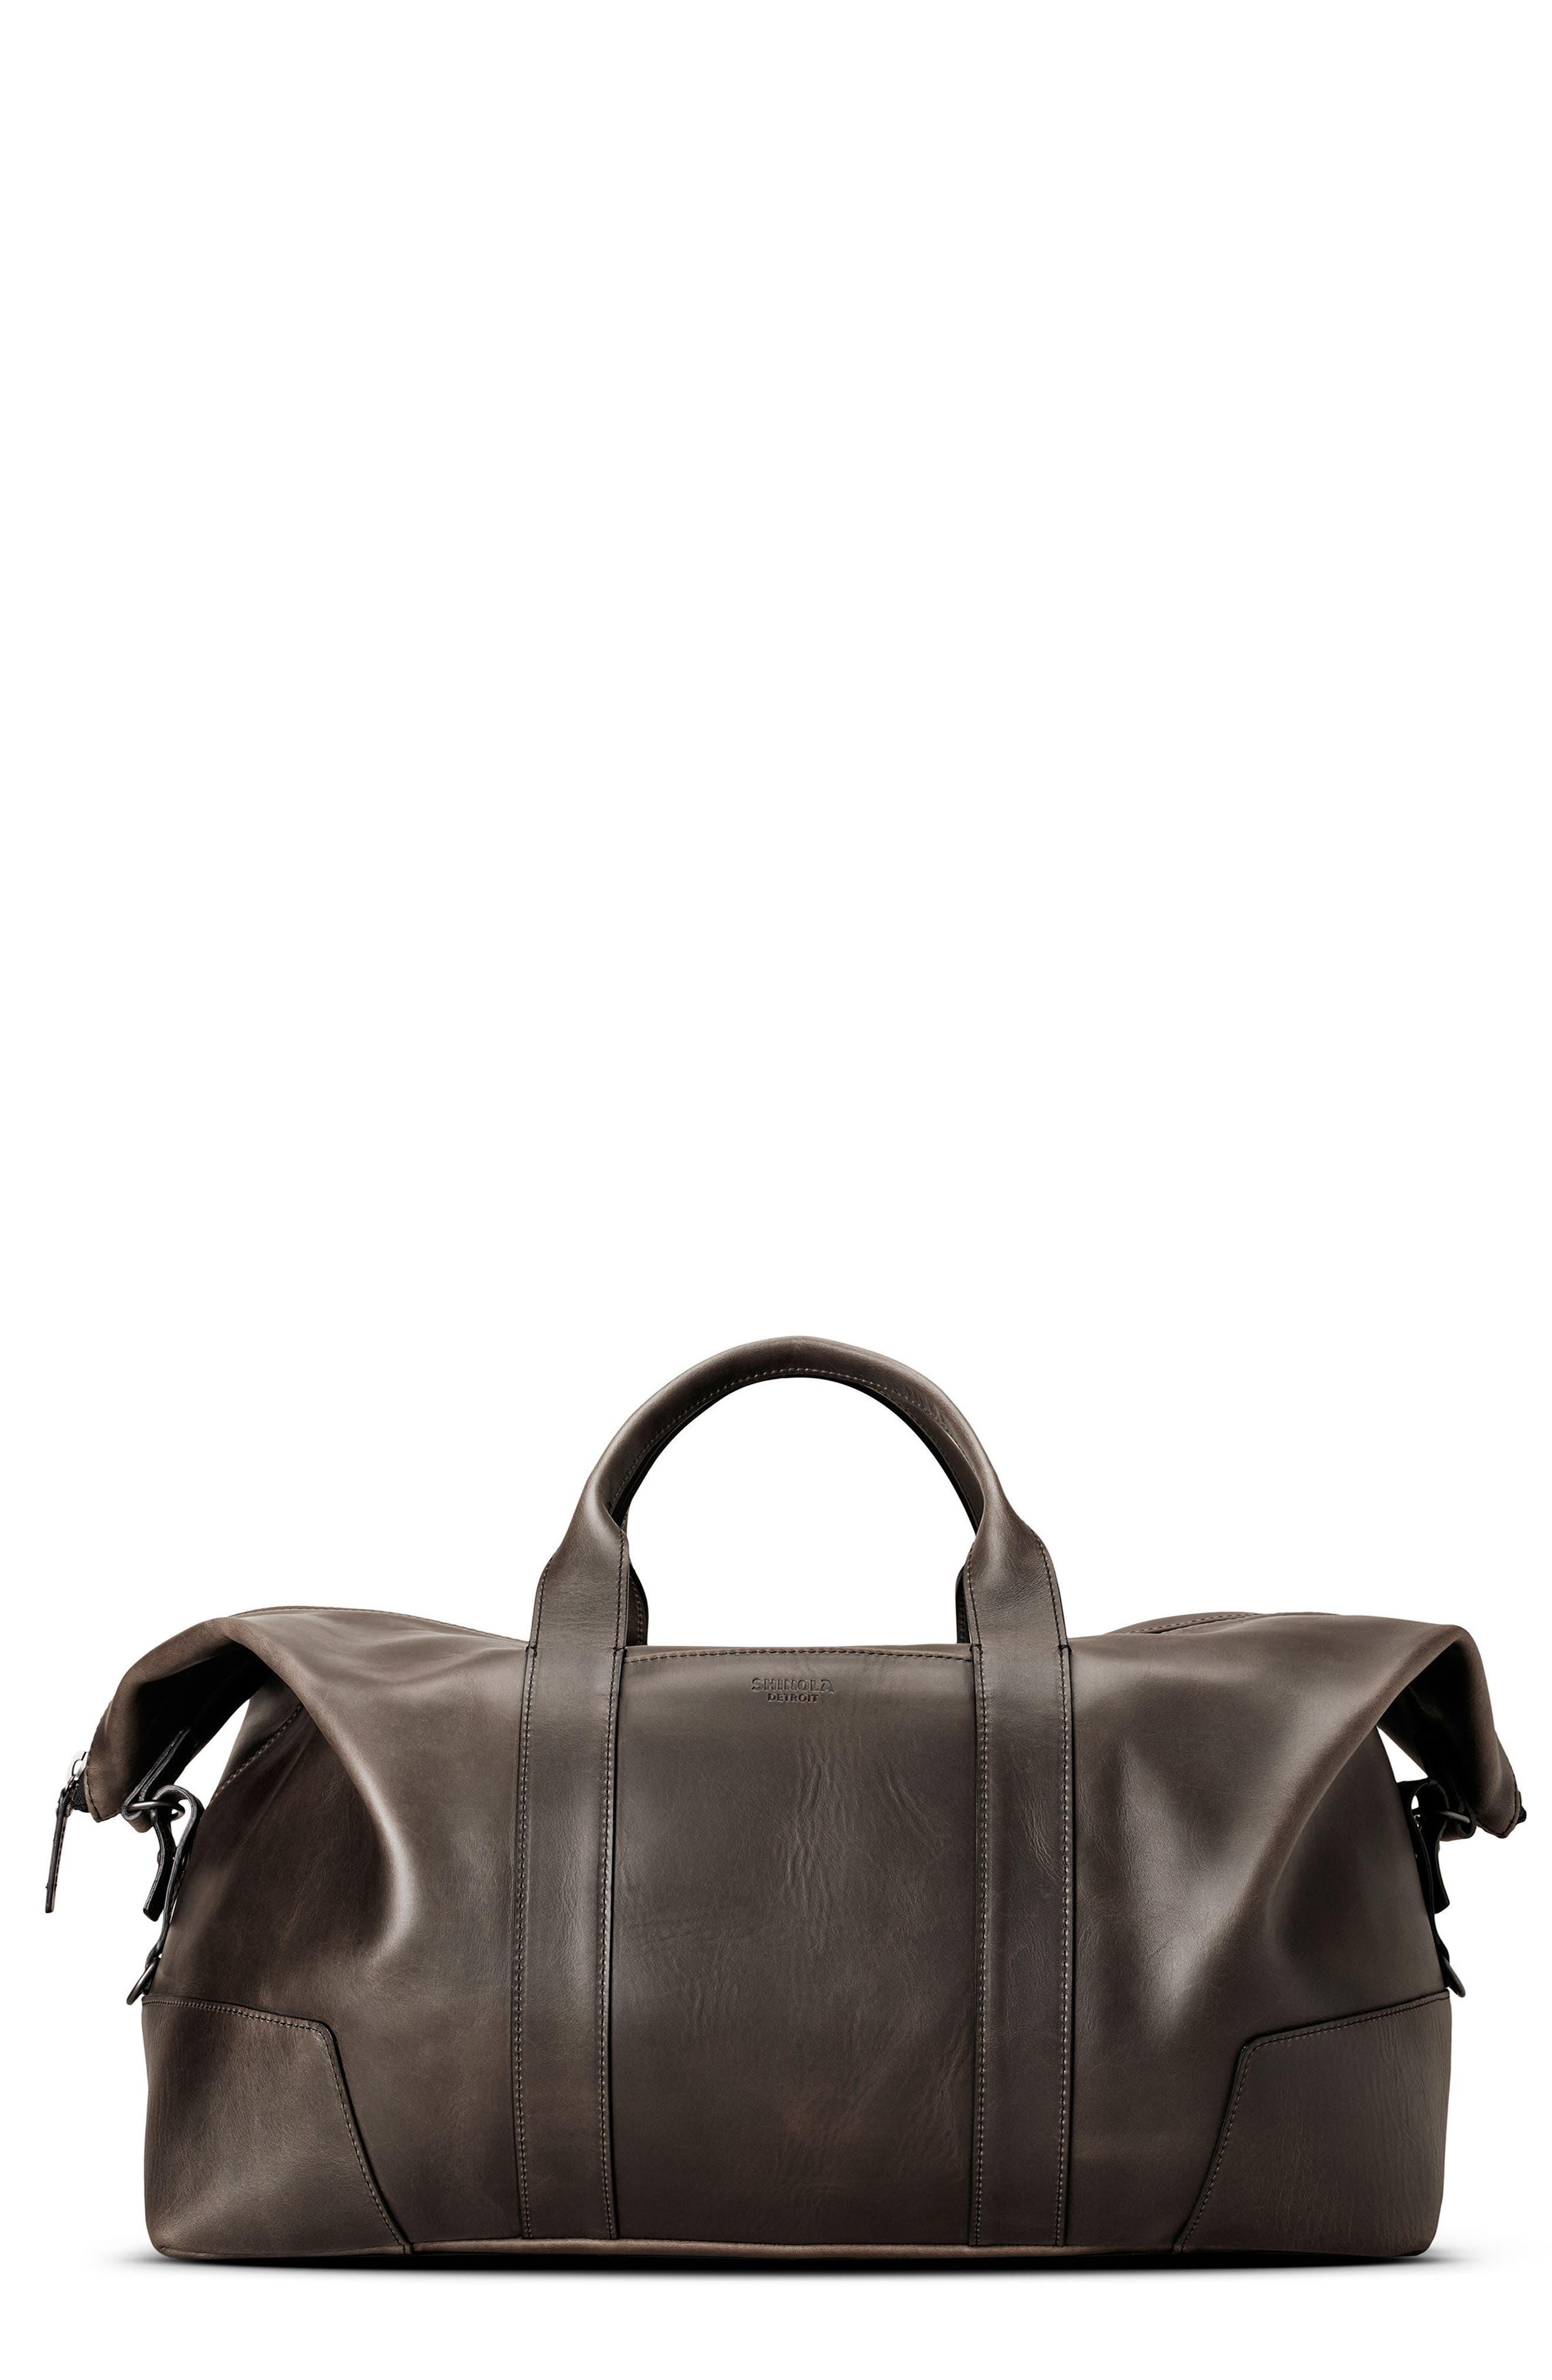 Madone Leather Carryall Bag,                         Main,                         color, 018